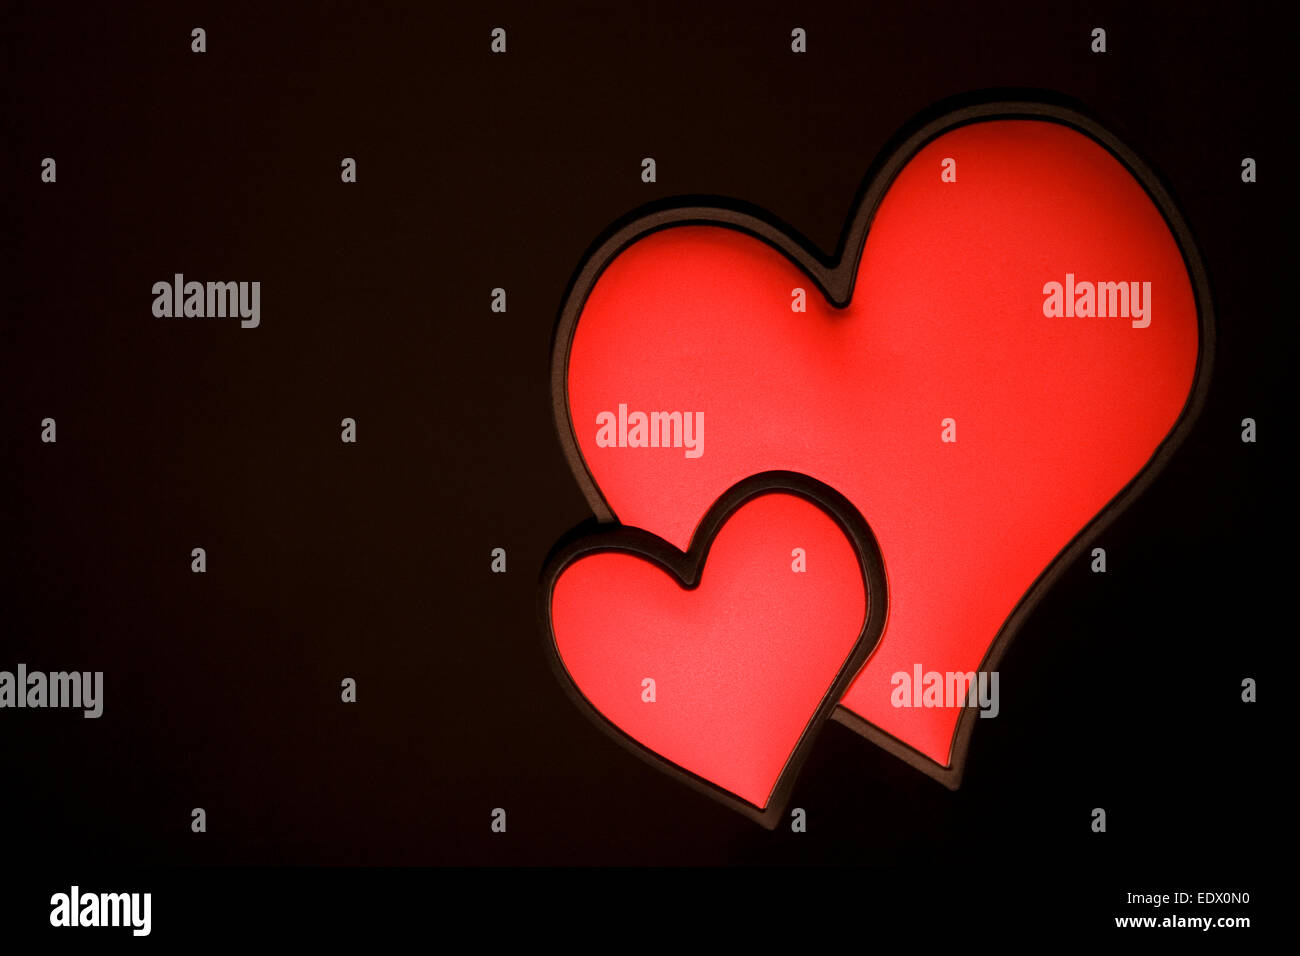 Two Red Love Hearts Joined Together With A Black And Flower Wallpaper Background